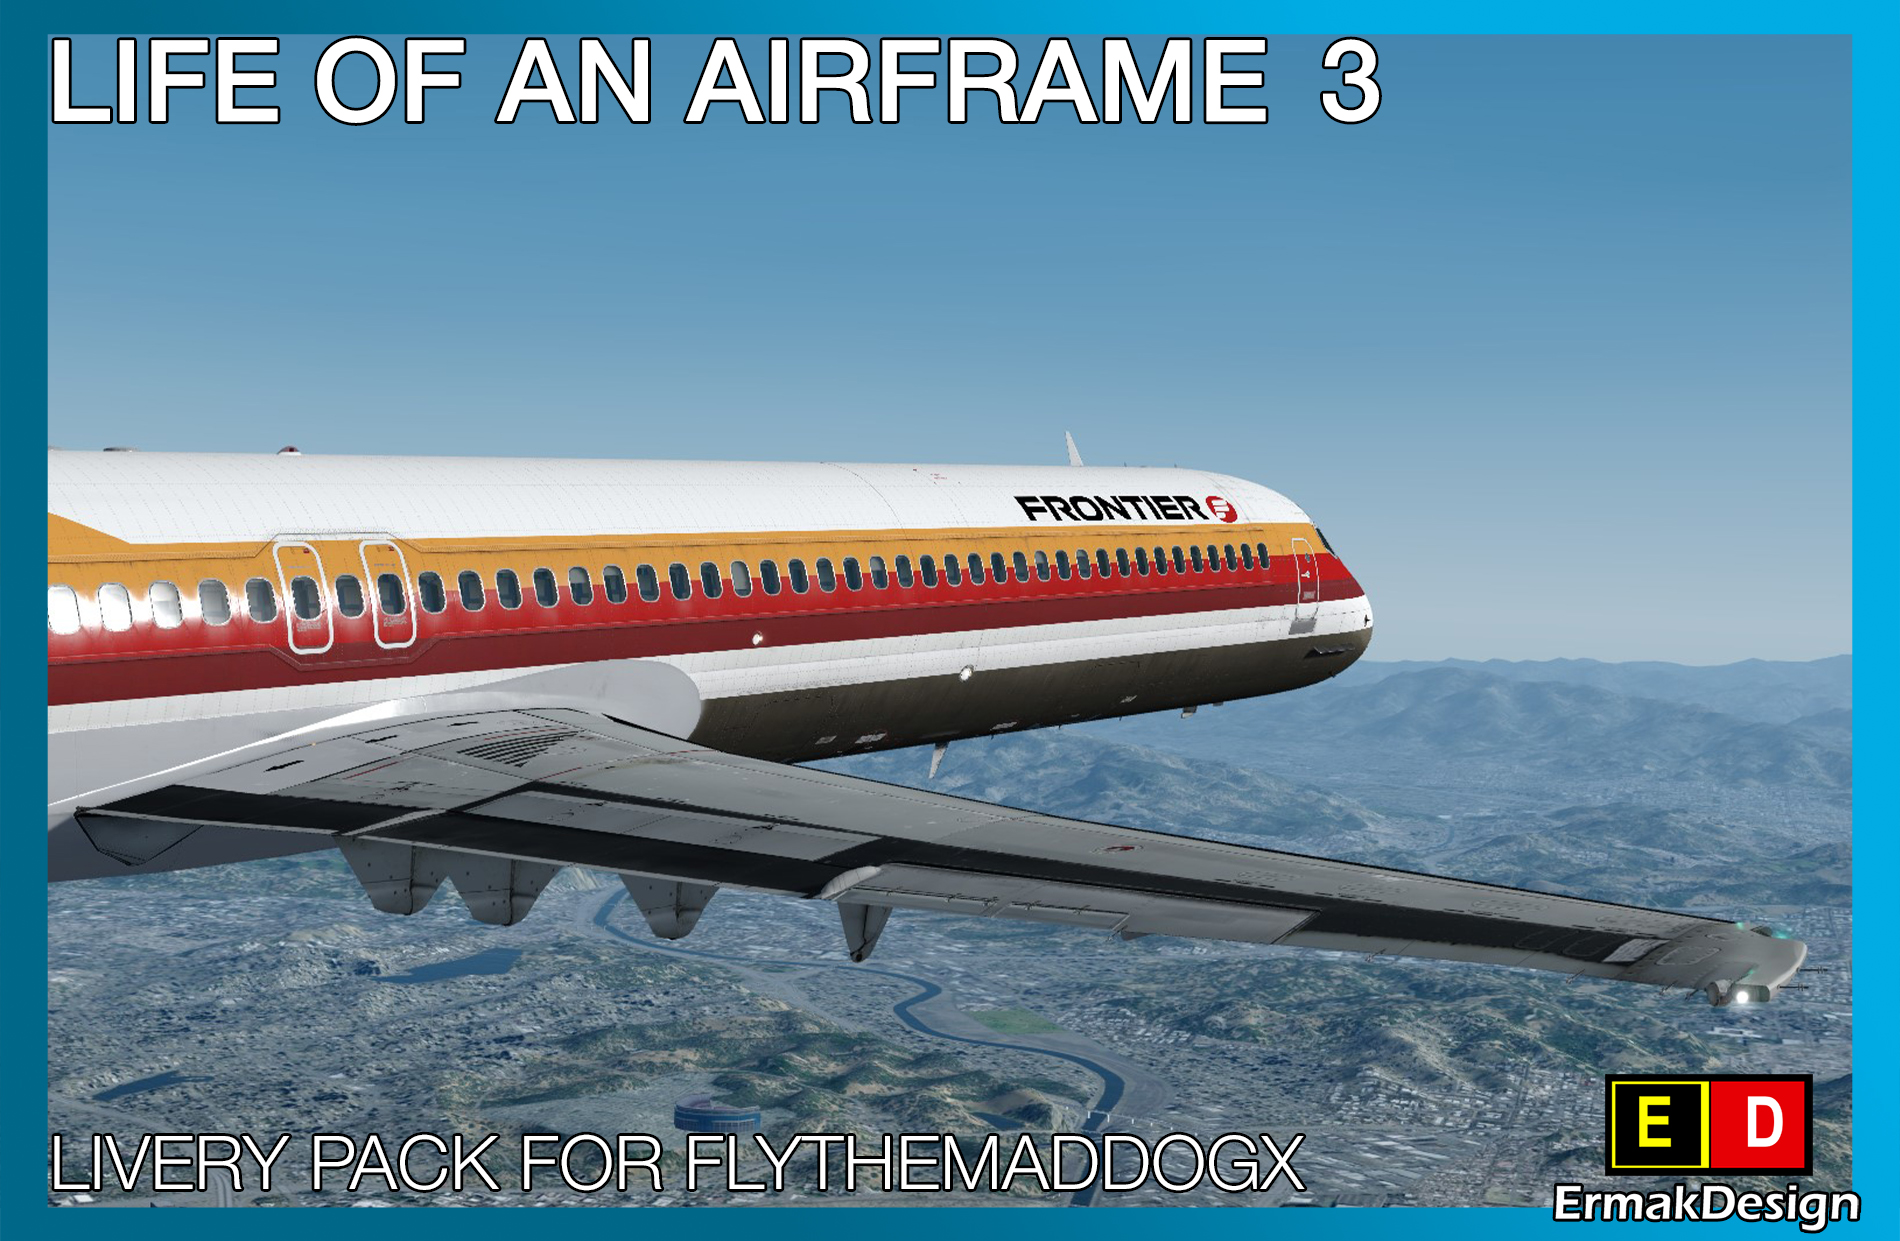 ERMAKDESIGN - LIFE OF AN AIRFRAME LIVERY PACK 3 FOR FLYTHEMADDOGX